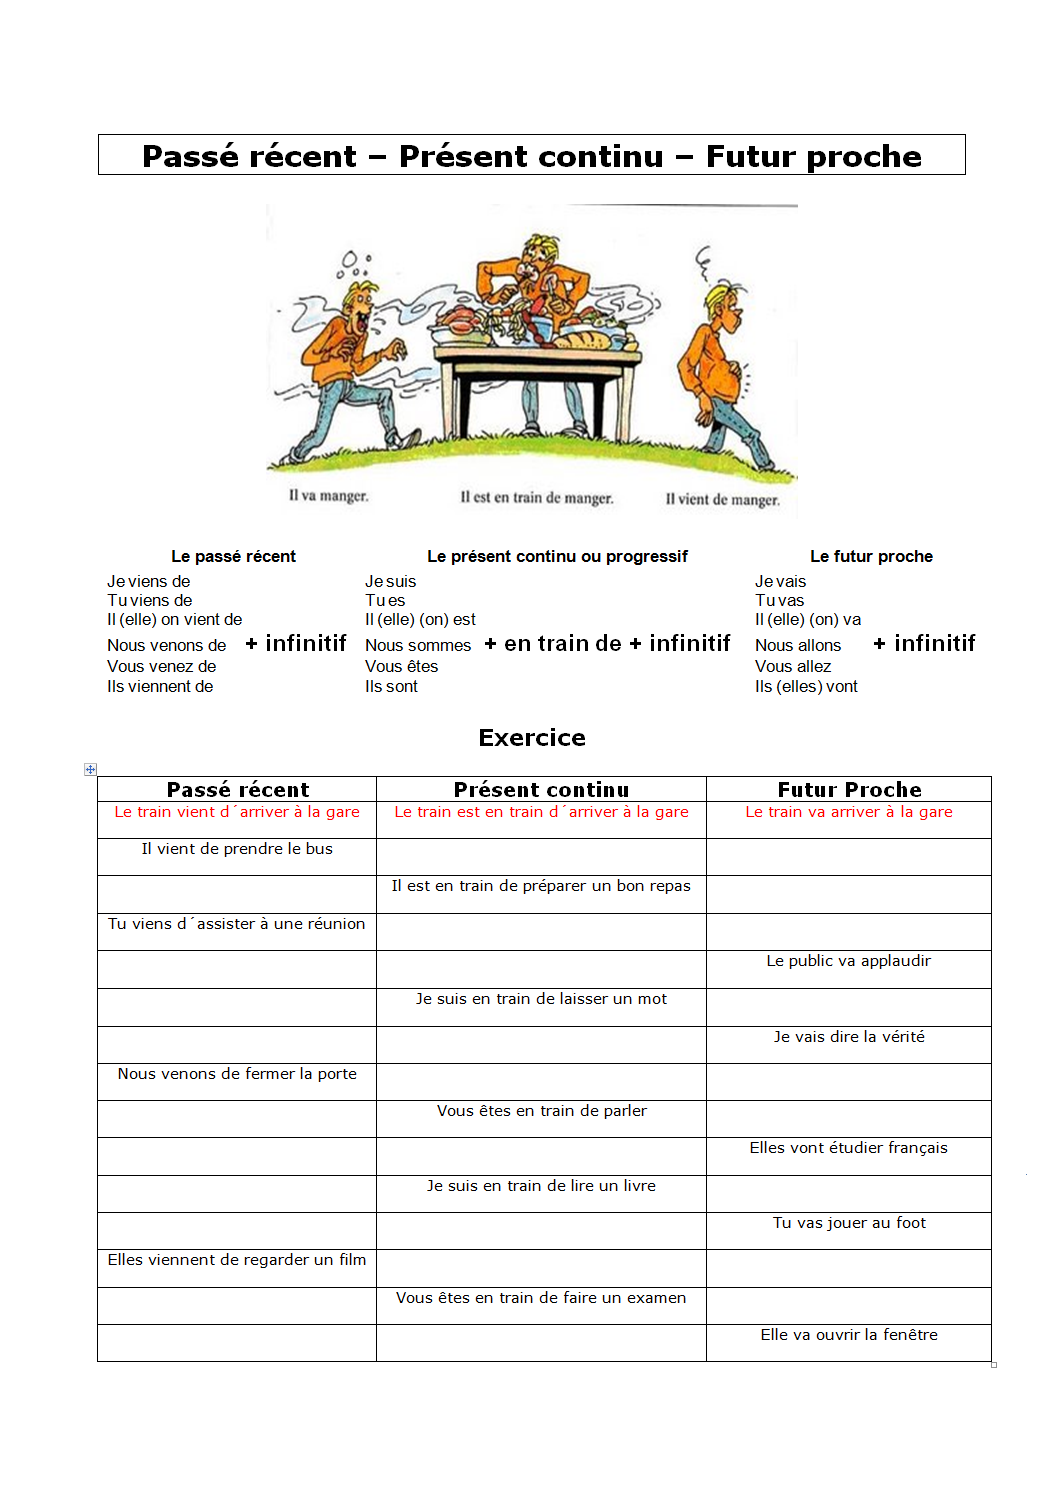 Le Futur Proche Worksheet Printable Worksheets And Activities For Teachers Parents Tutors And Homeschool Families